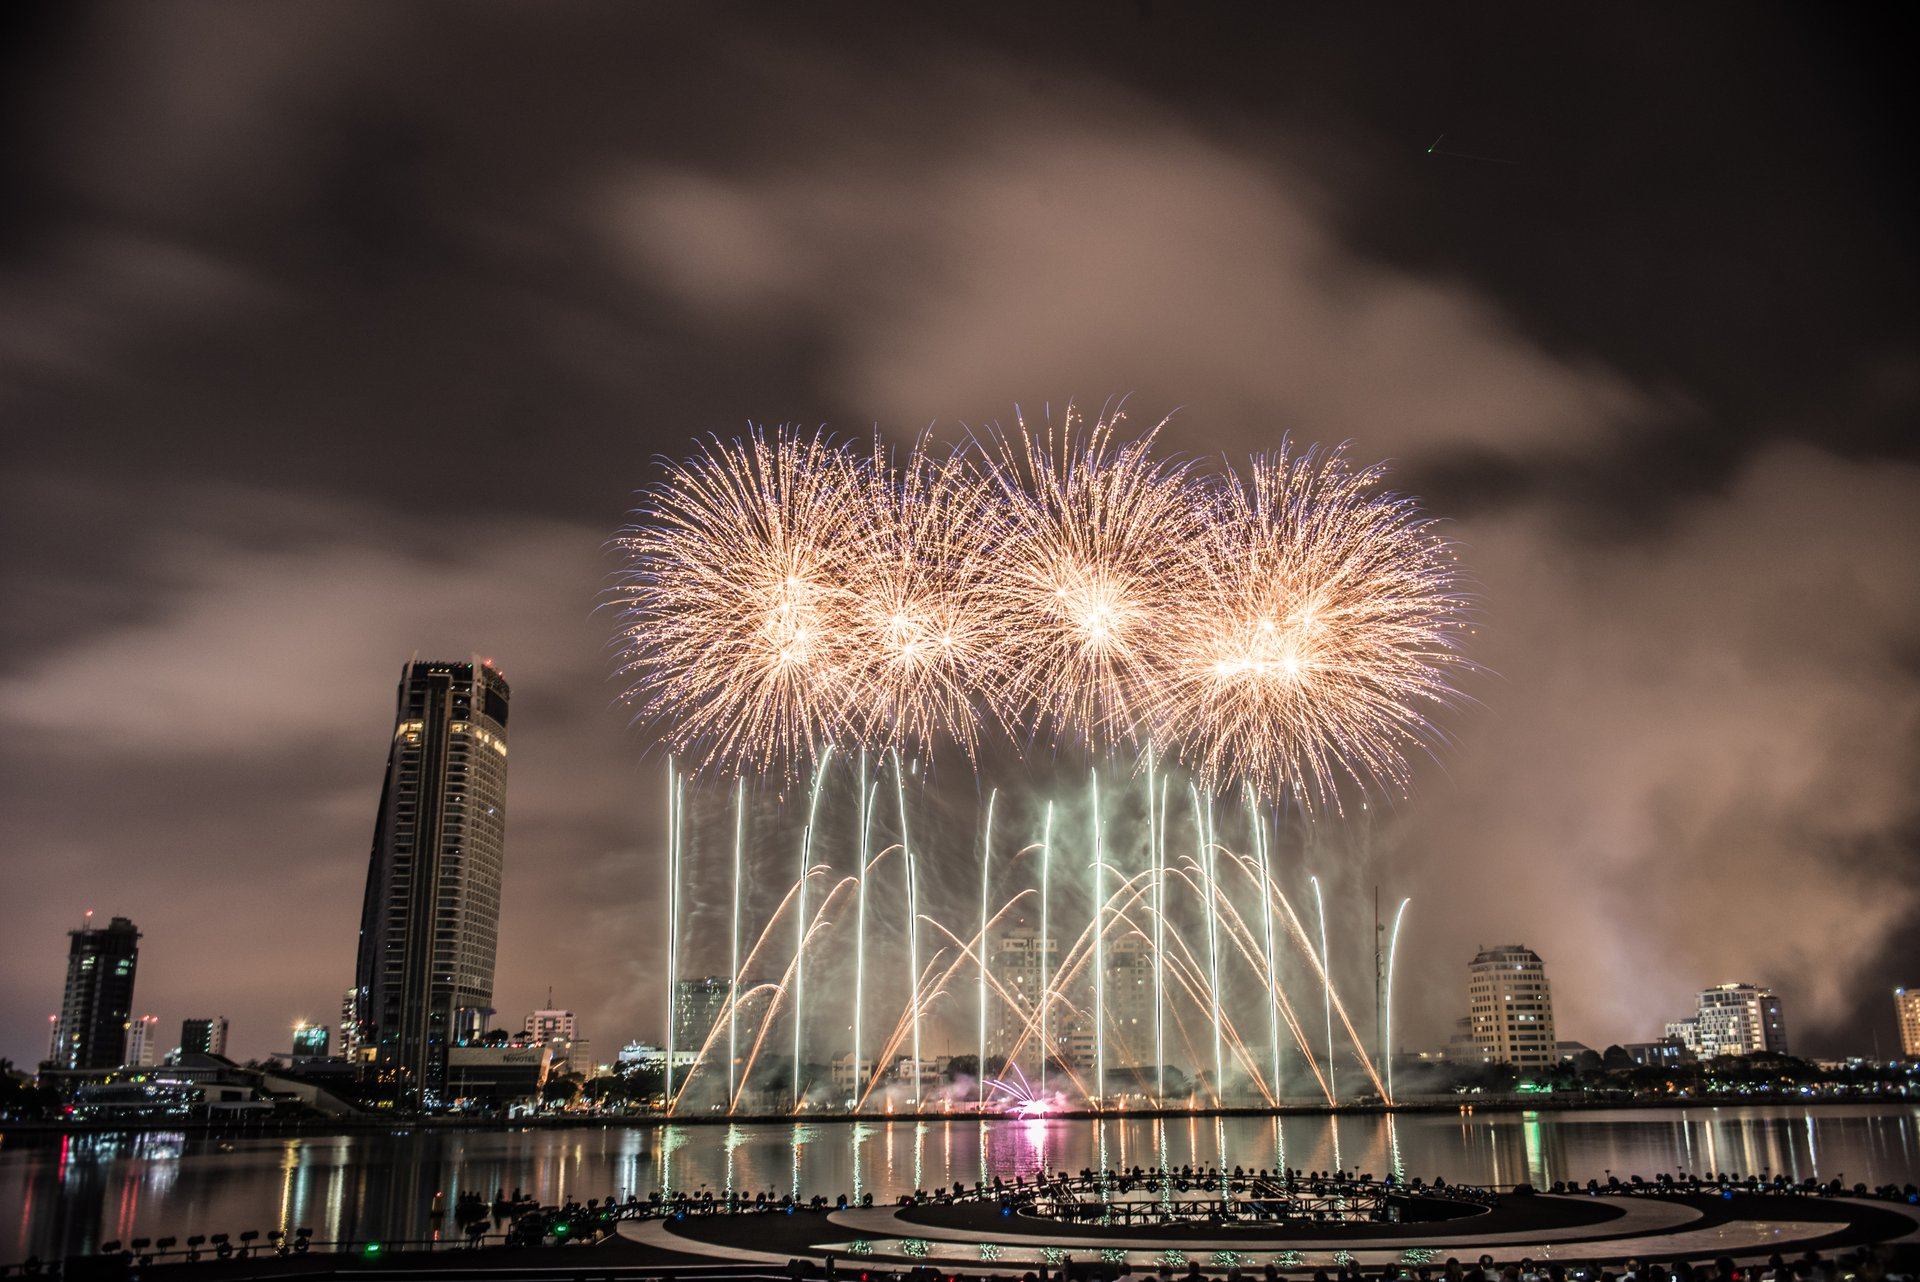 Da Nang International Fireworks Competition in Vietnam 2019 - Best Time